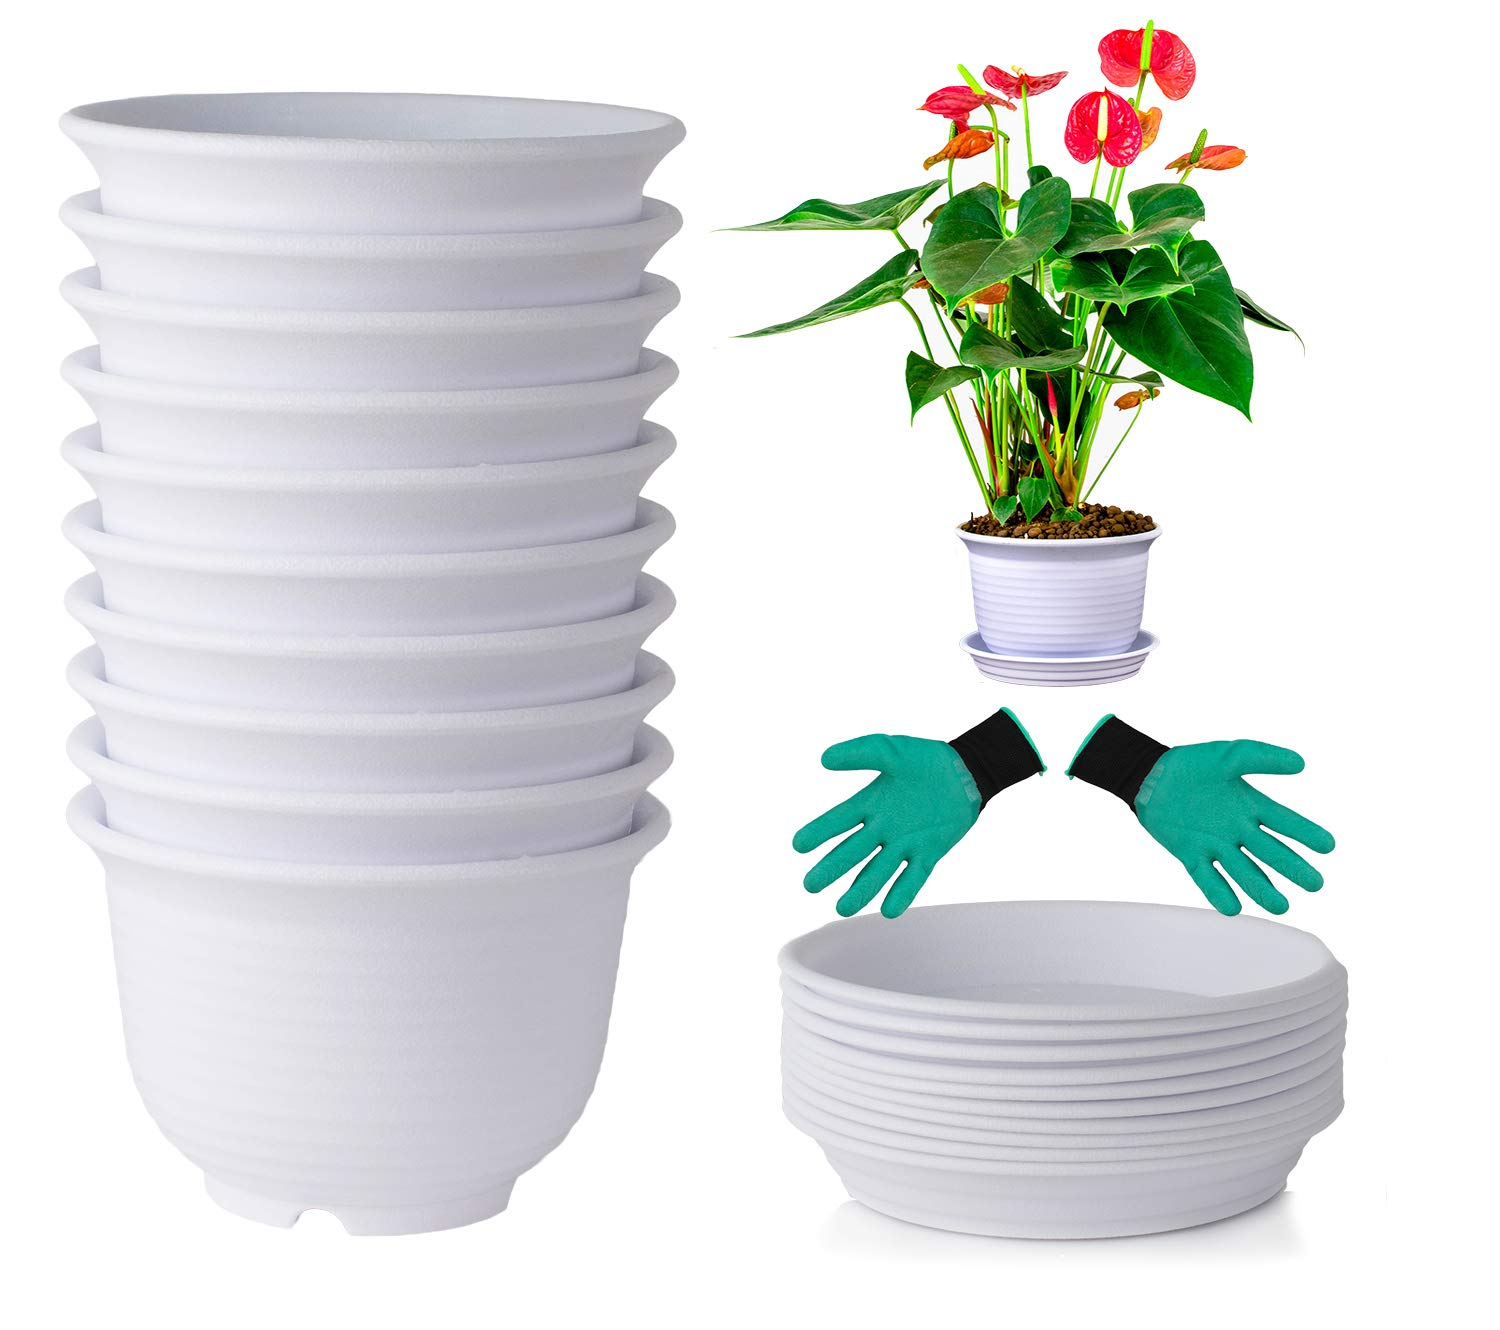 DeElf 10 Sets Plastic Flower Pots 6 inch Planters with Drainage and Saucers for Modern Indoor Plants, Orchid, Herbs, Succulents, Cactus, and Seeding Nursery, White Color, Bulk by DeElf